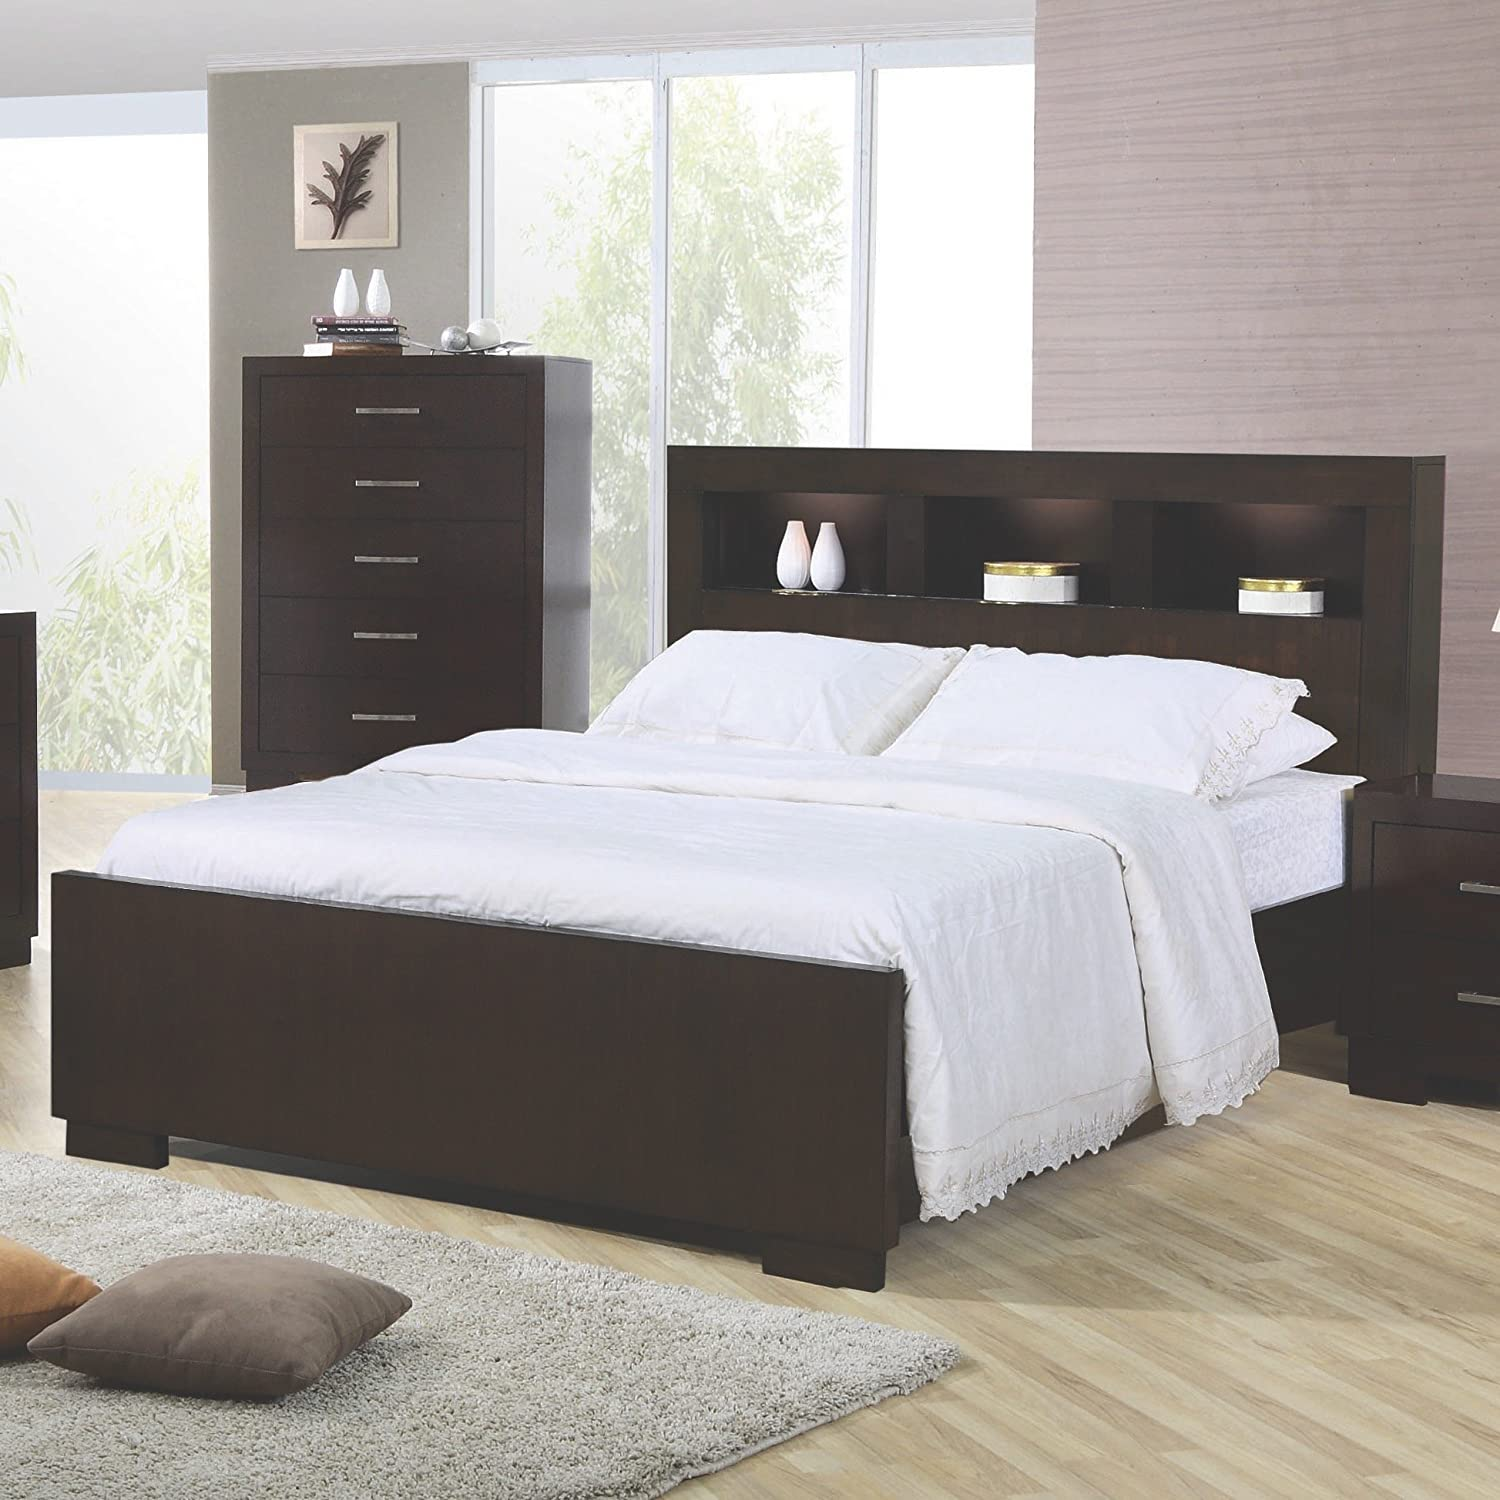 Jessica California King Bed with Storage Headboard and Built in Lighting  Cappuccino